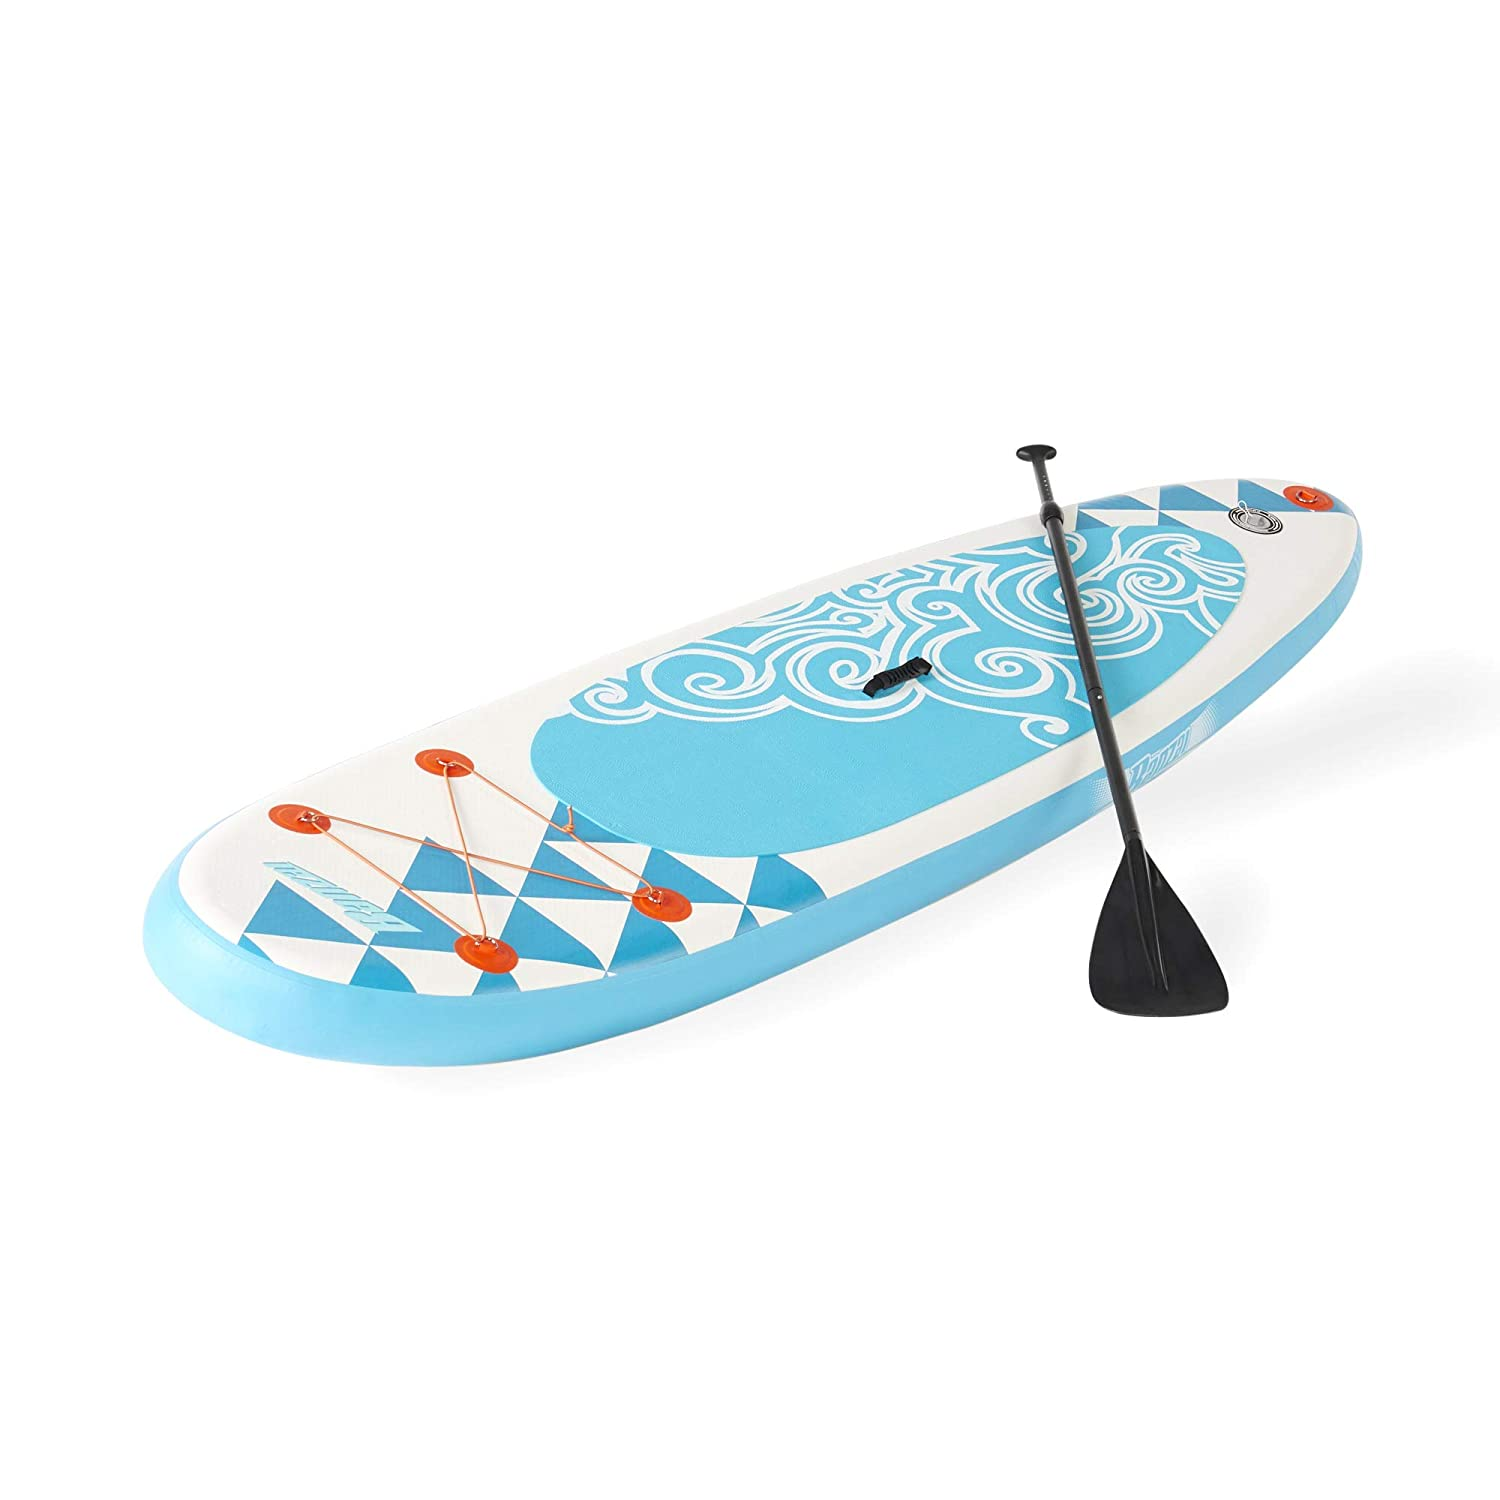 BANZAI Inflatable SUP Stand Up Paddle Board w/Adjustable Paddle & Backpack